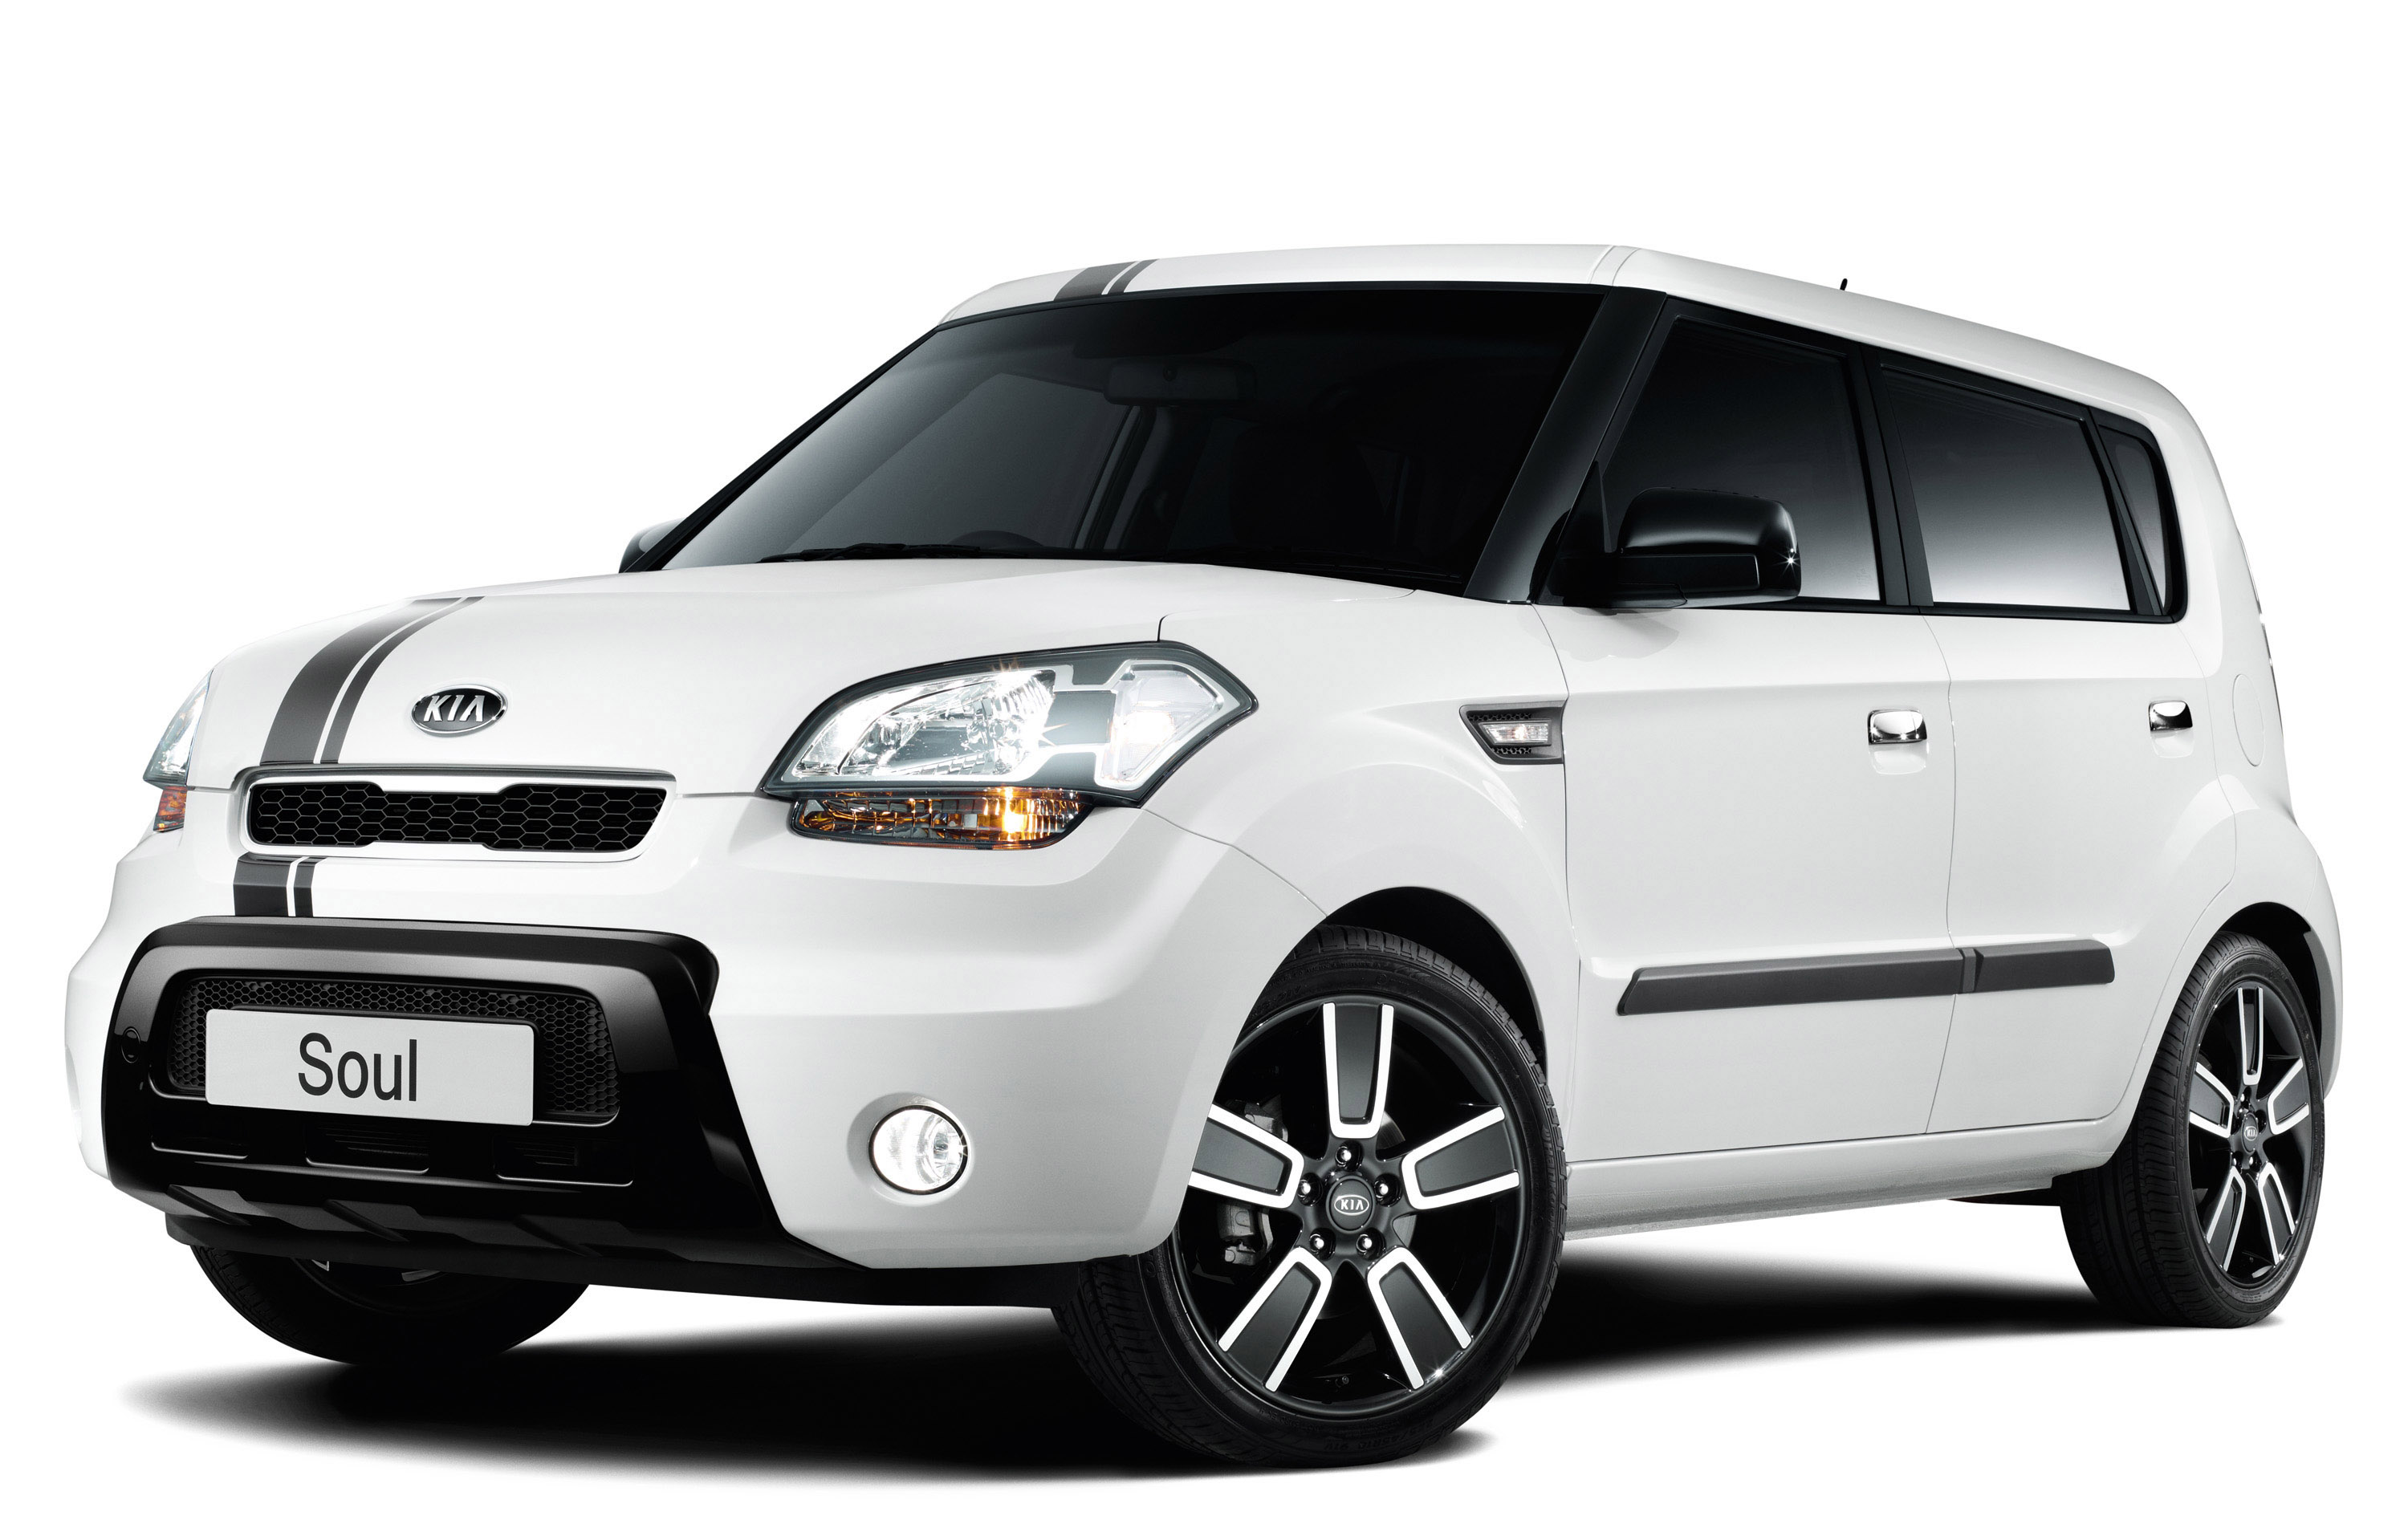 2010 Kia Soul Echo More Style And Luxury